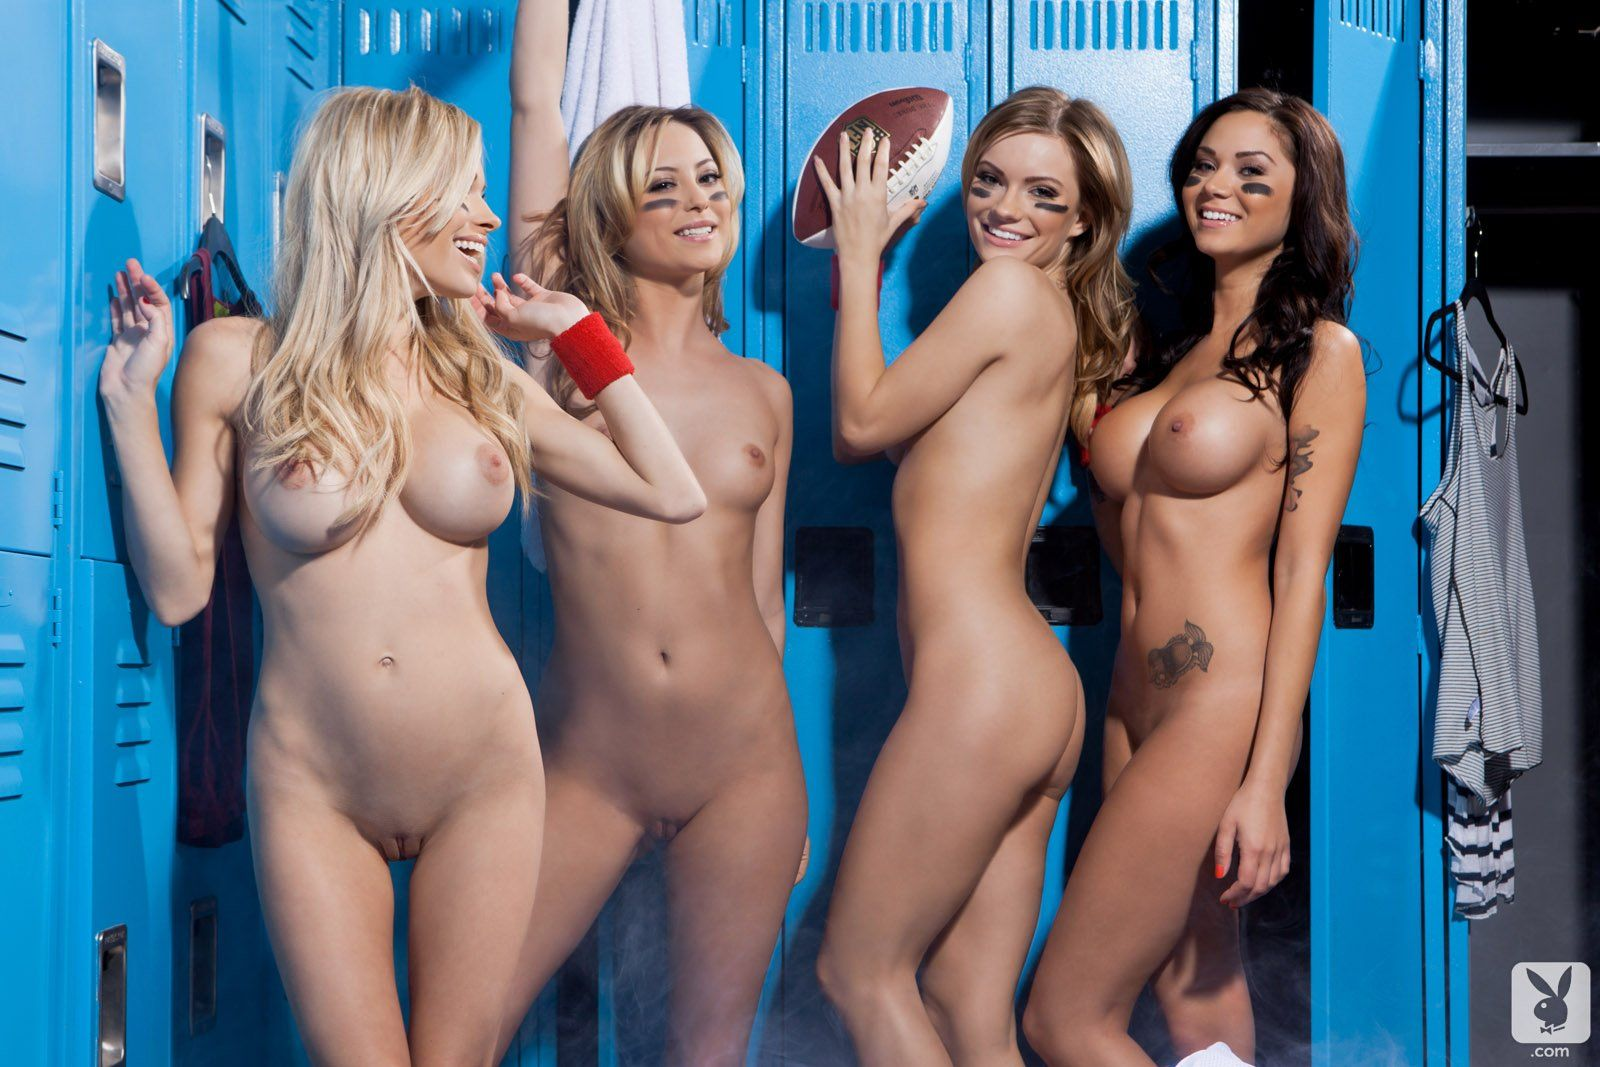 Naked ladies in change rooms images